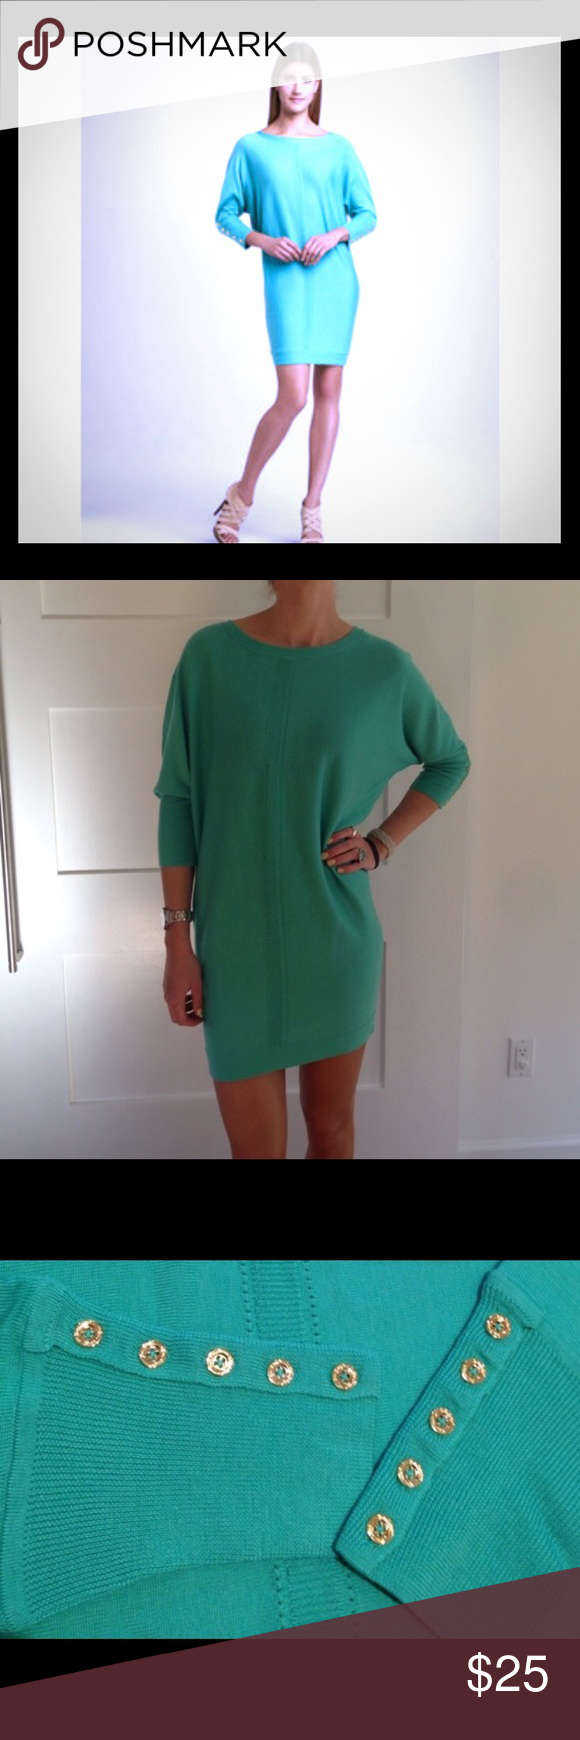 34f344ecdd PRICE DROP Lily Pulitzer Bloomfield Sweater Dress Beautiful turquoise Lily  Pulitzer dress. Perfect for your spring or summer wardrobe.